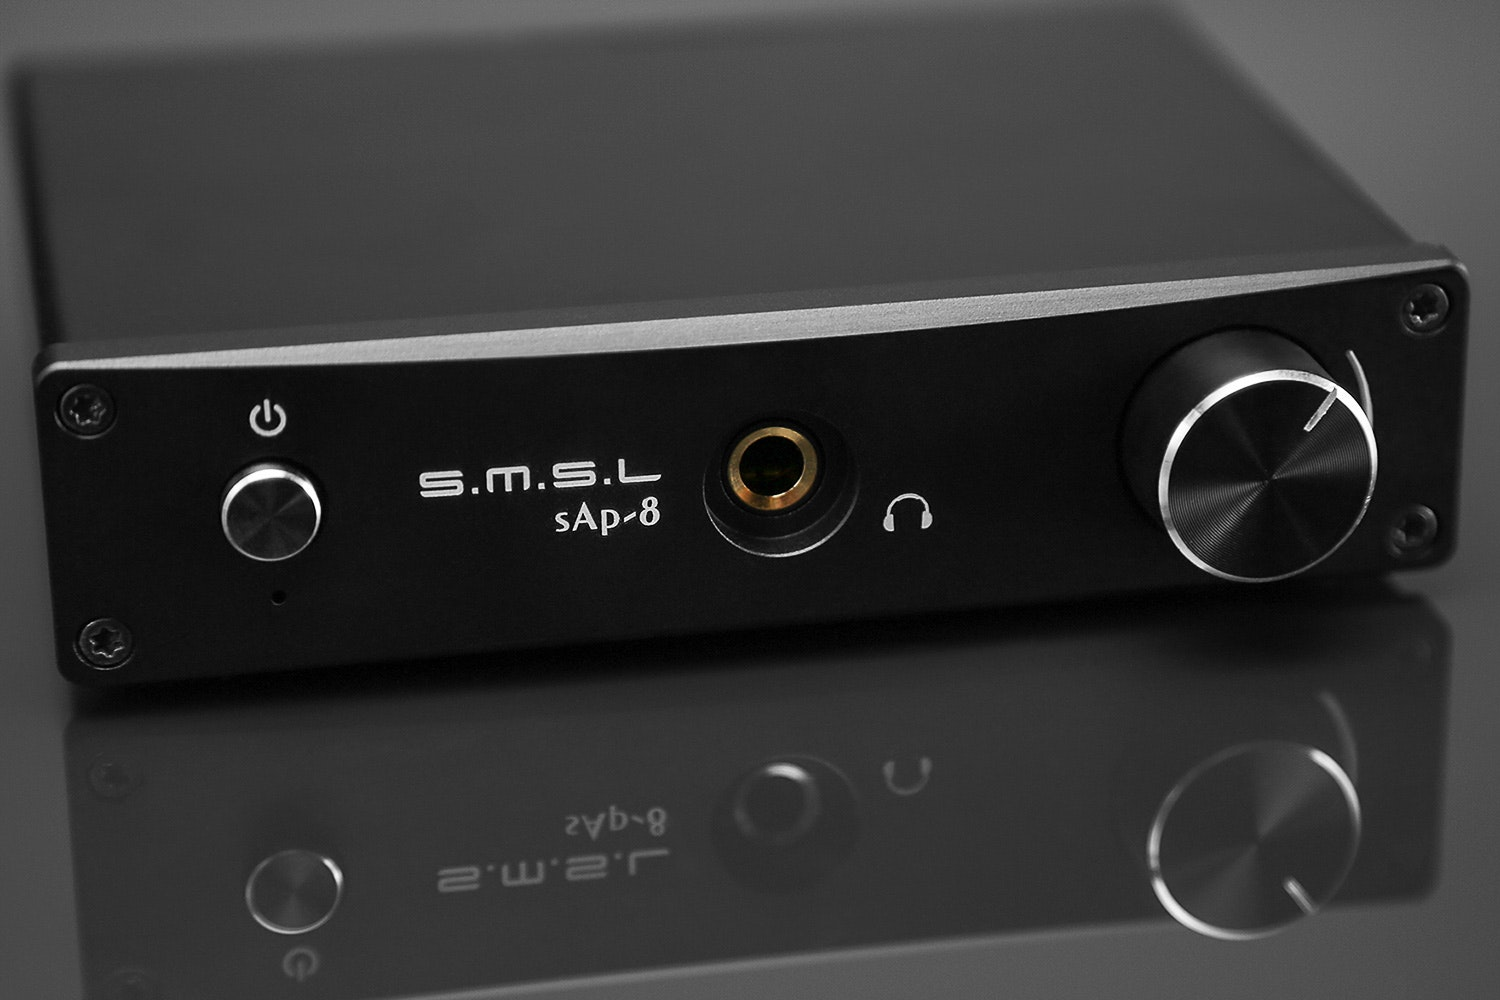 SMSL SAP-8 Headphone Amp